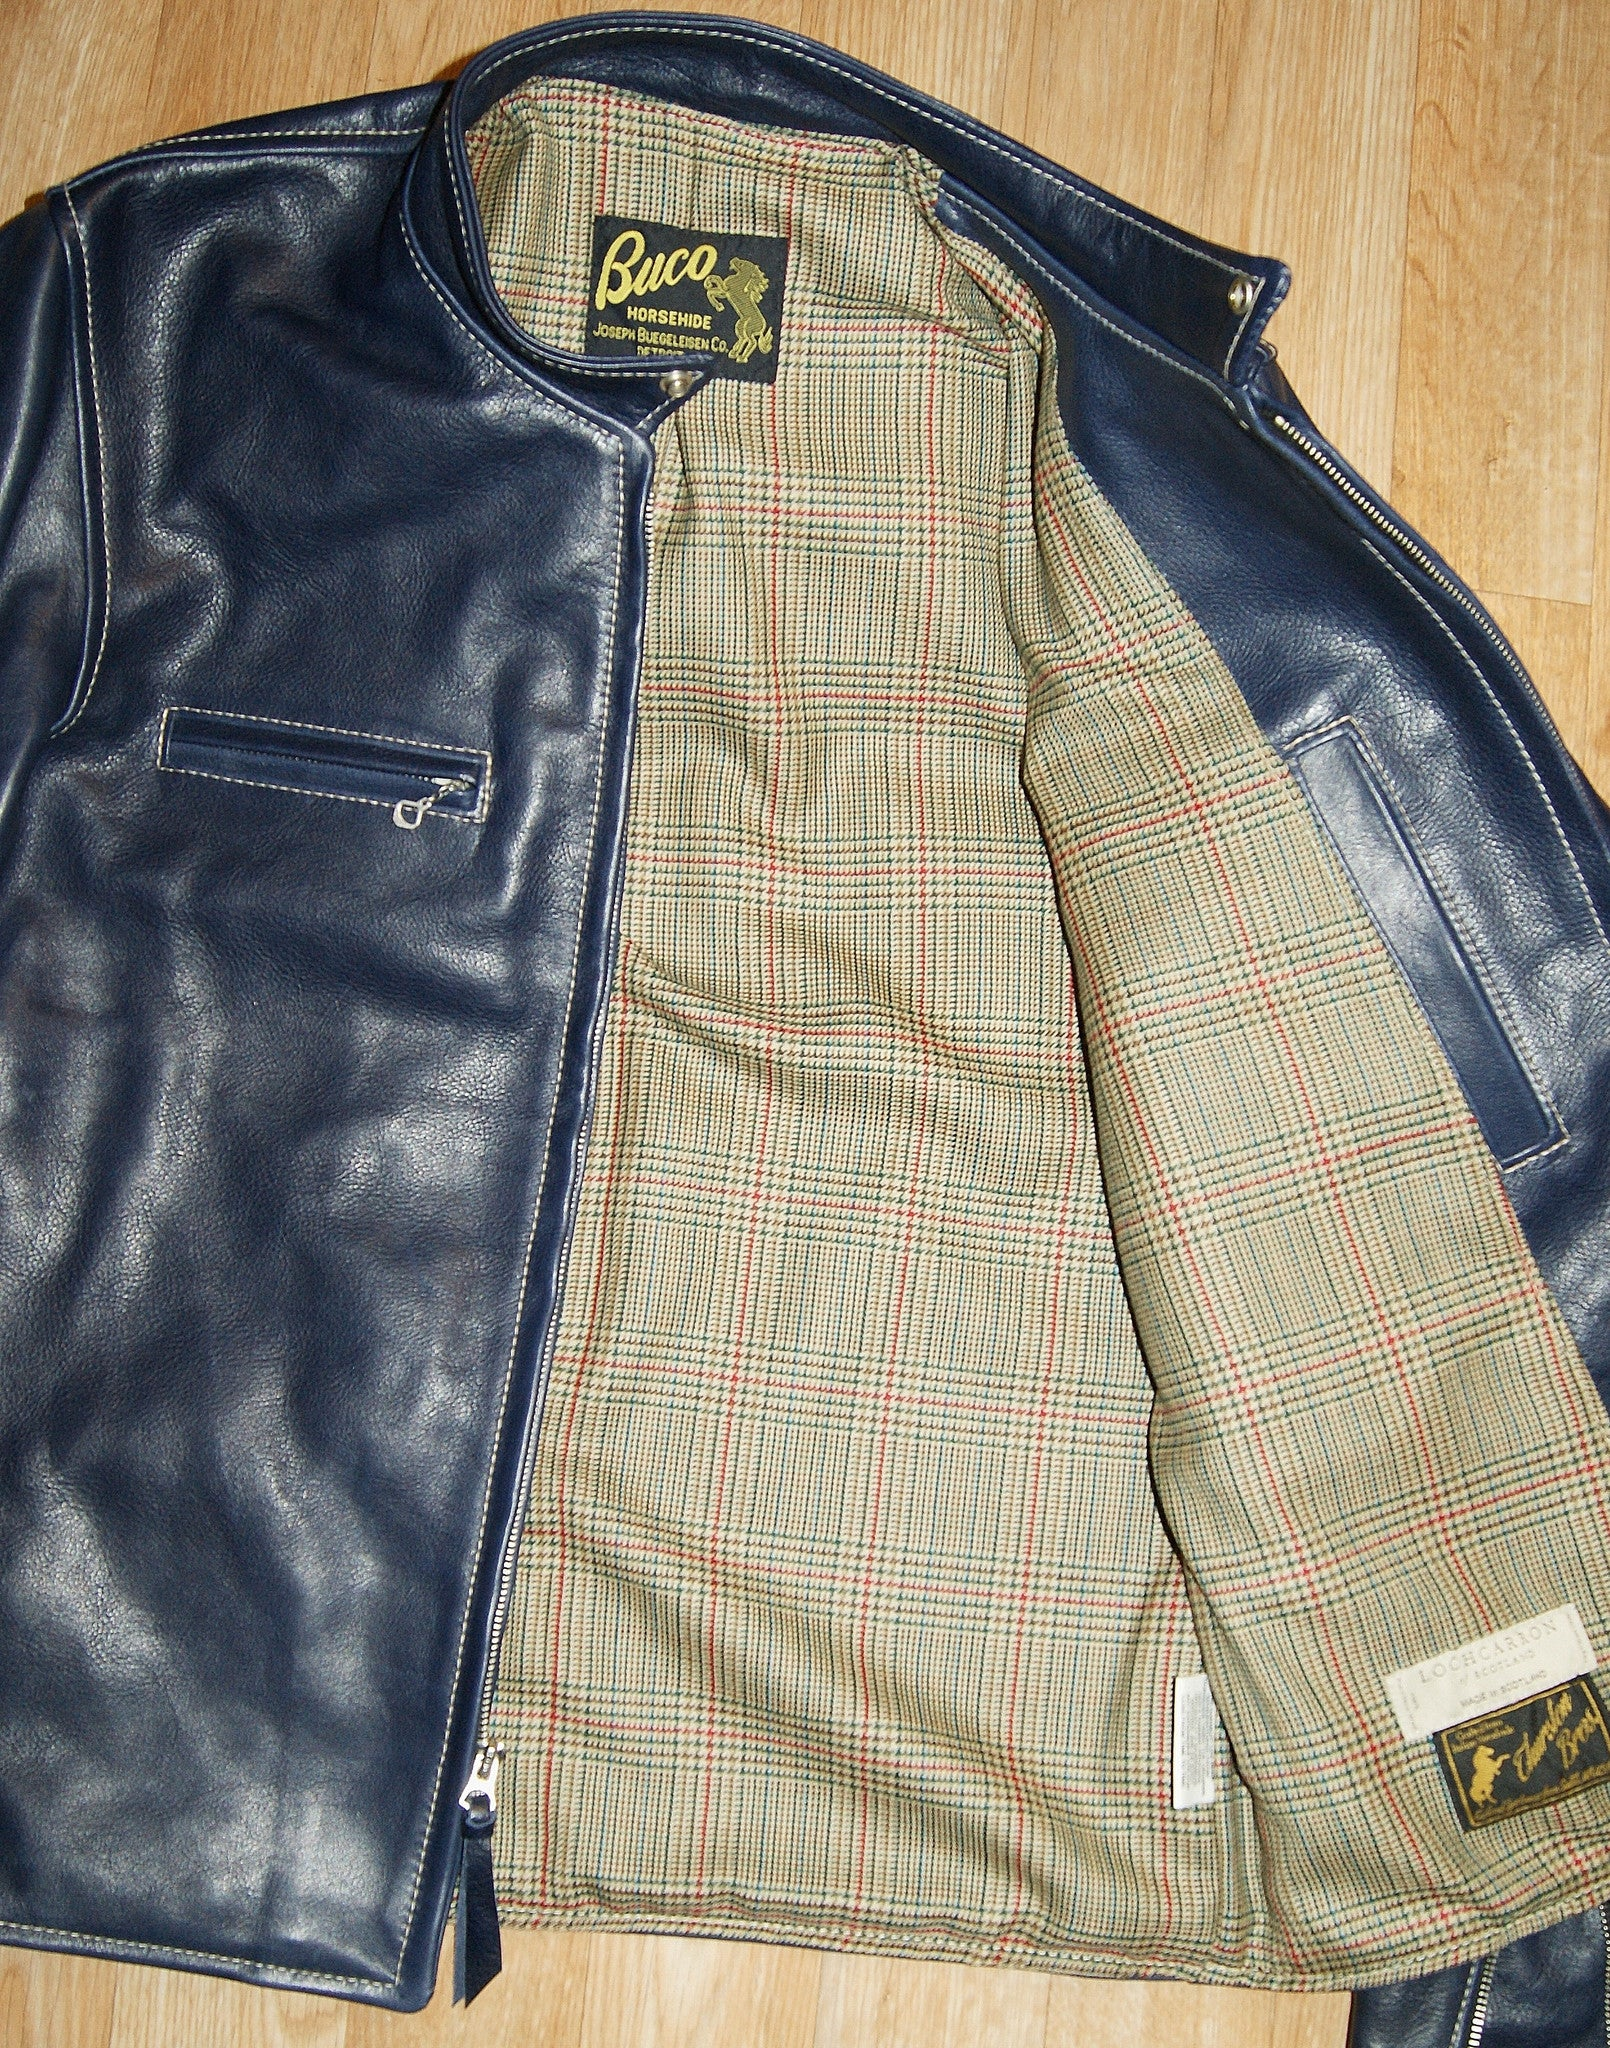 Aero Board Racer, size 42, Navy Blue Vicenza Horsehide